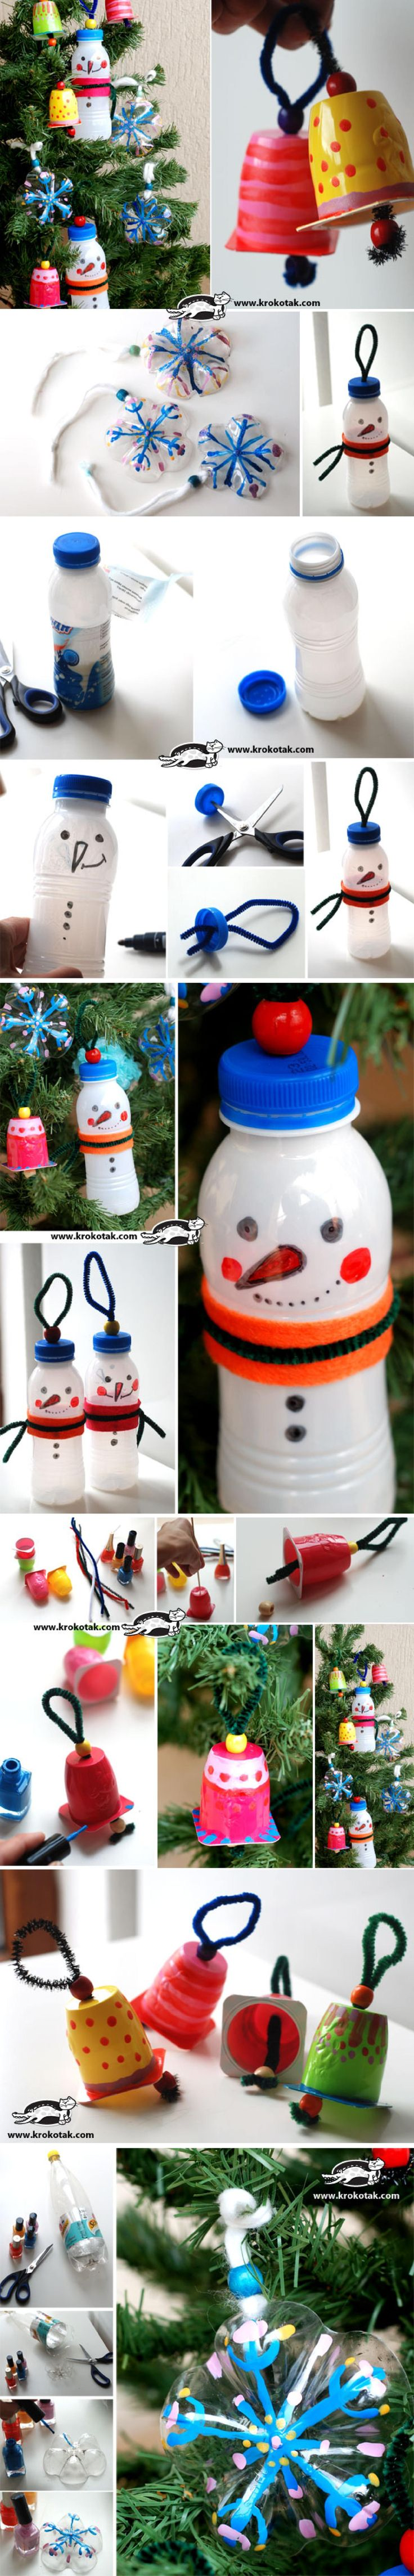 Creative DIY snowman decoration || Reciclar botes de plástico para decorar en navidad / Via krokotak